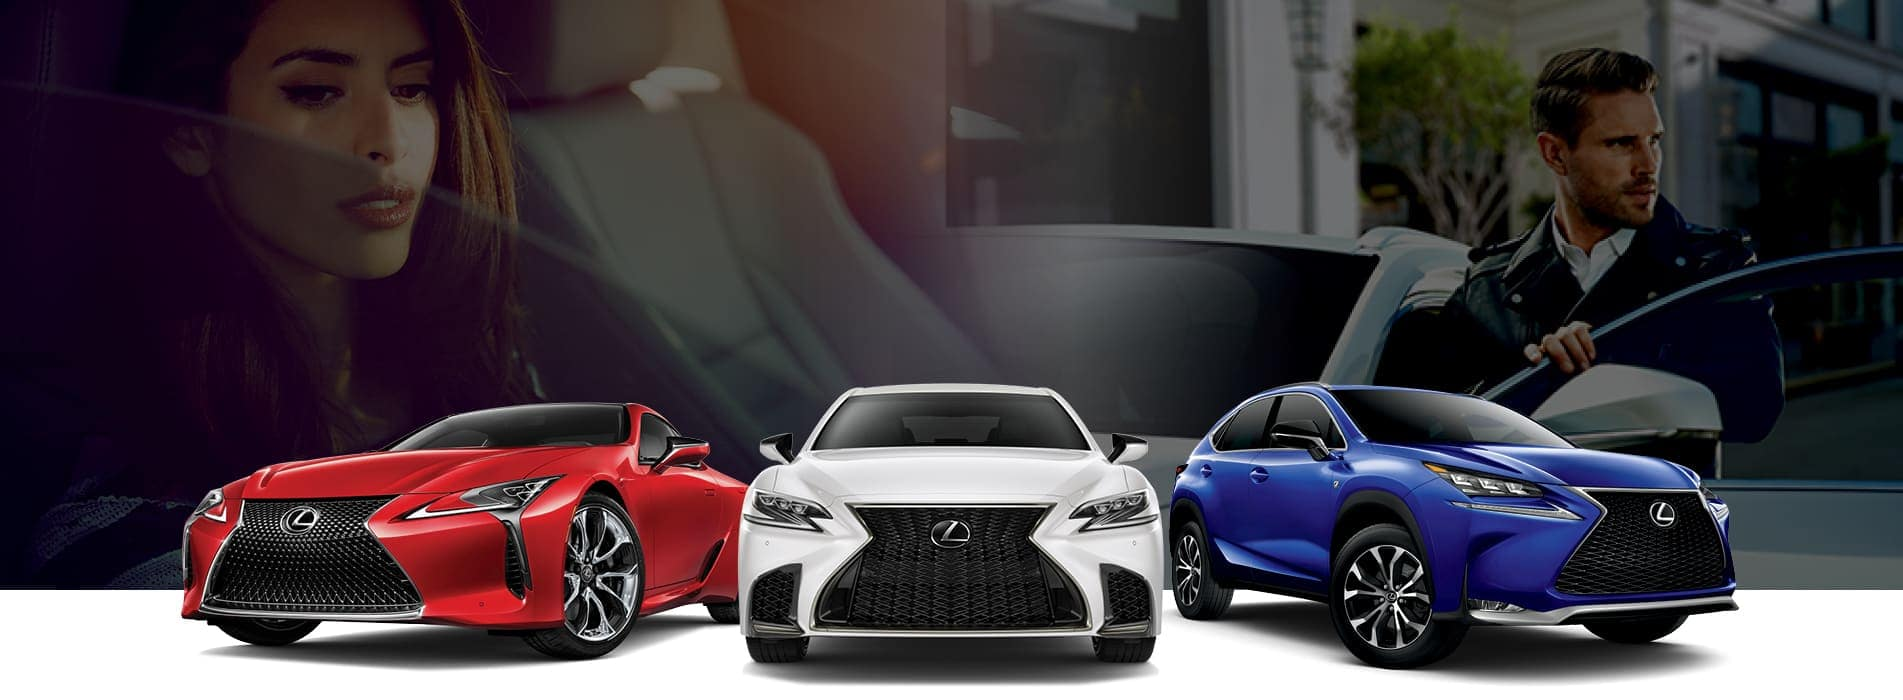 Lexus line-up against a background of a woman sitting in a car and a man getting into a car